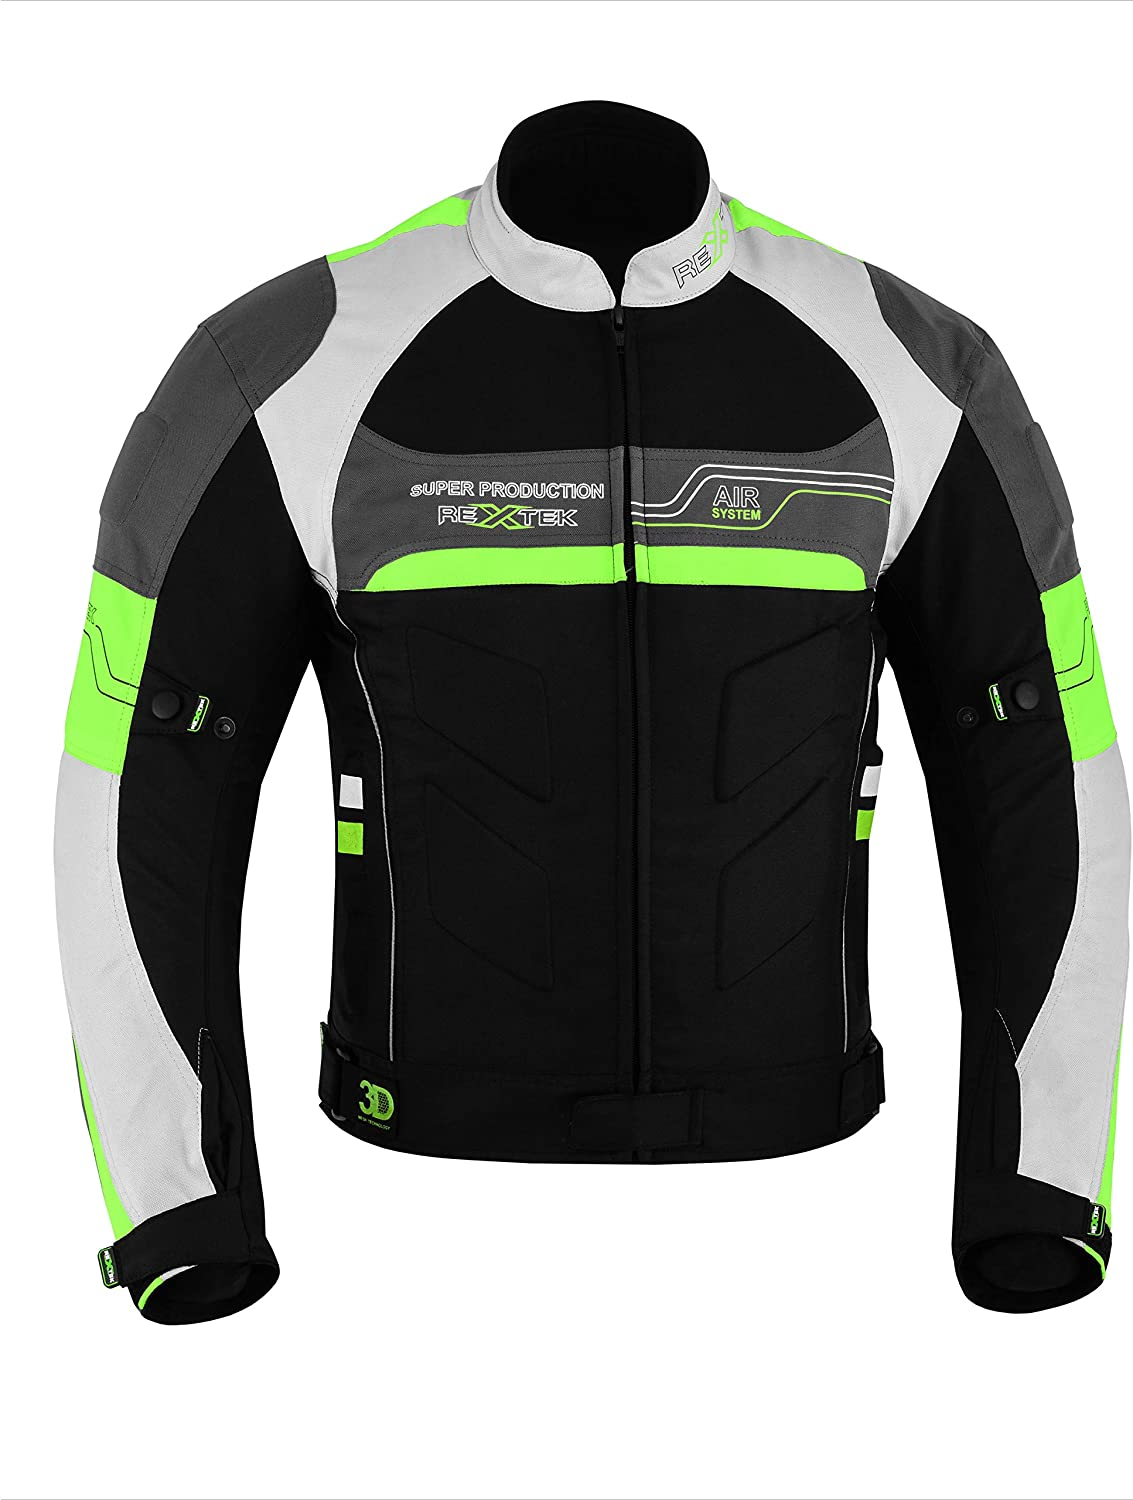 Fluroscent Green, M 100/% Best Fitting for Motorbike Riders Motorbike Motorcycle Jackets for Mens Sports Accessories All Weather New Look Jacket in Cordura Fabric with CE Removable Armour